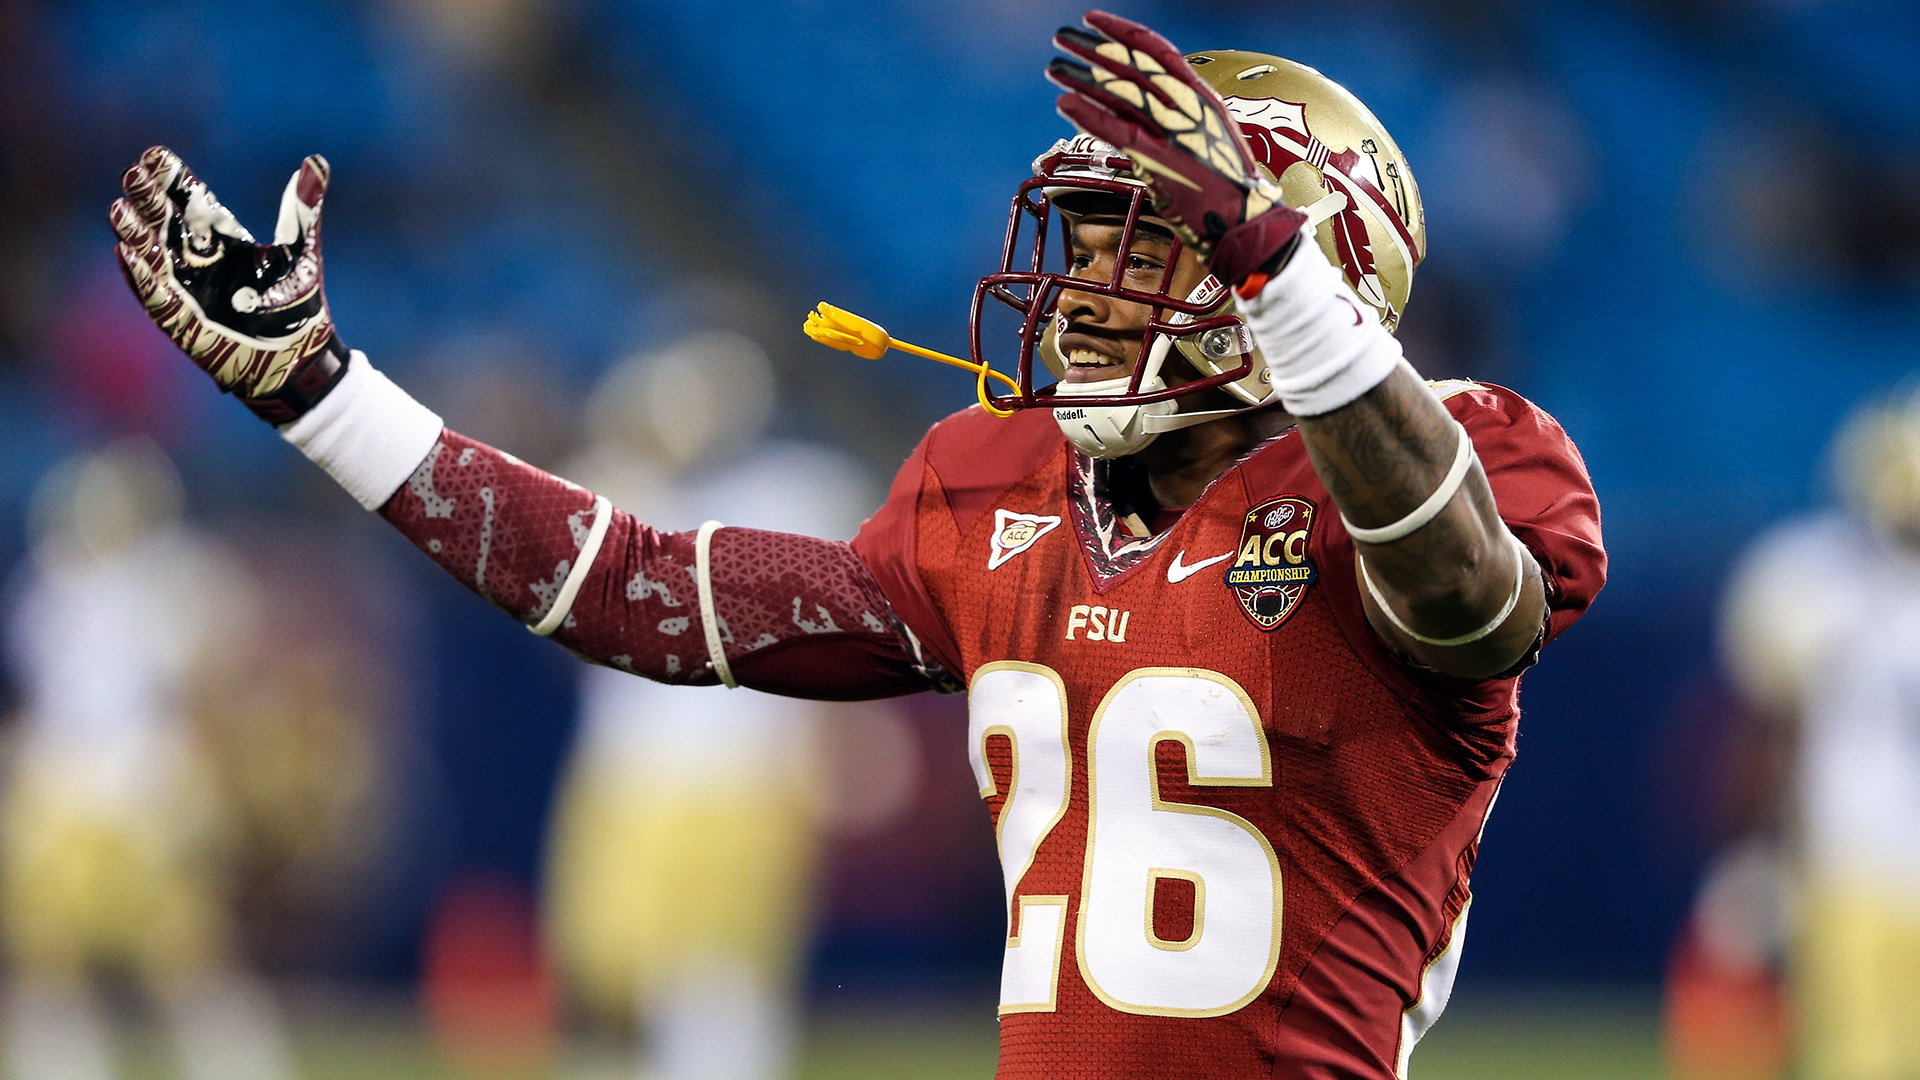 P.J. Williams impresses at FSU pro day outside the Winston spotlight